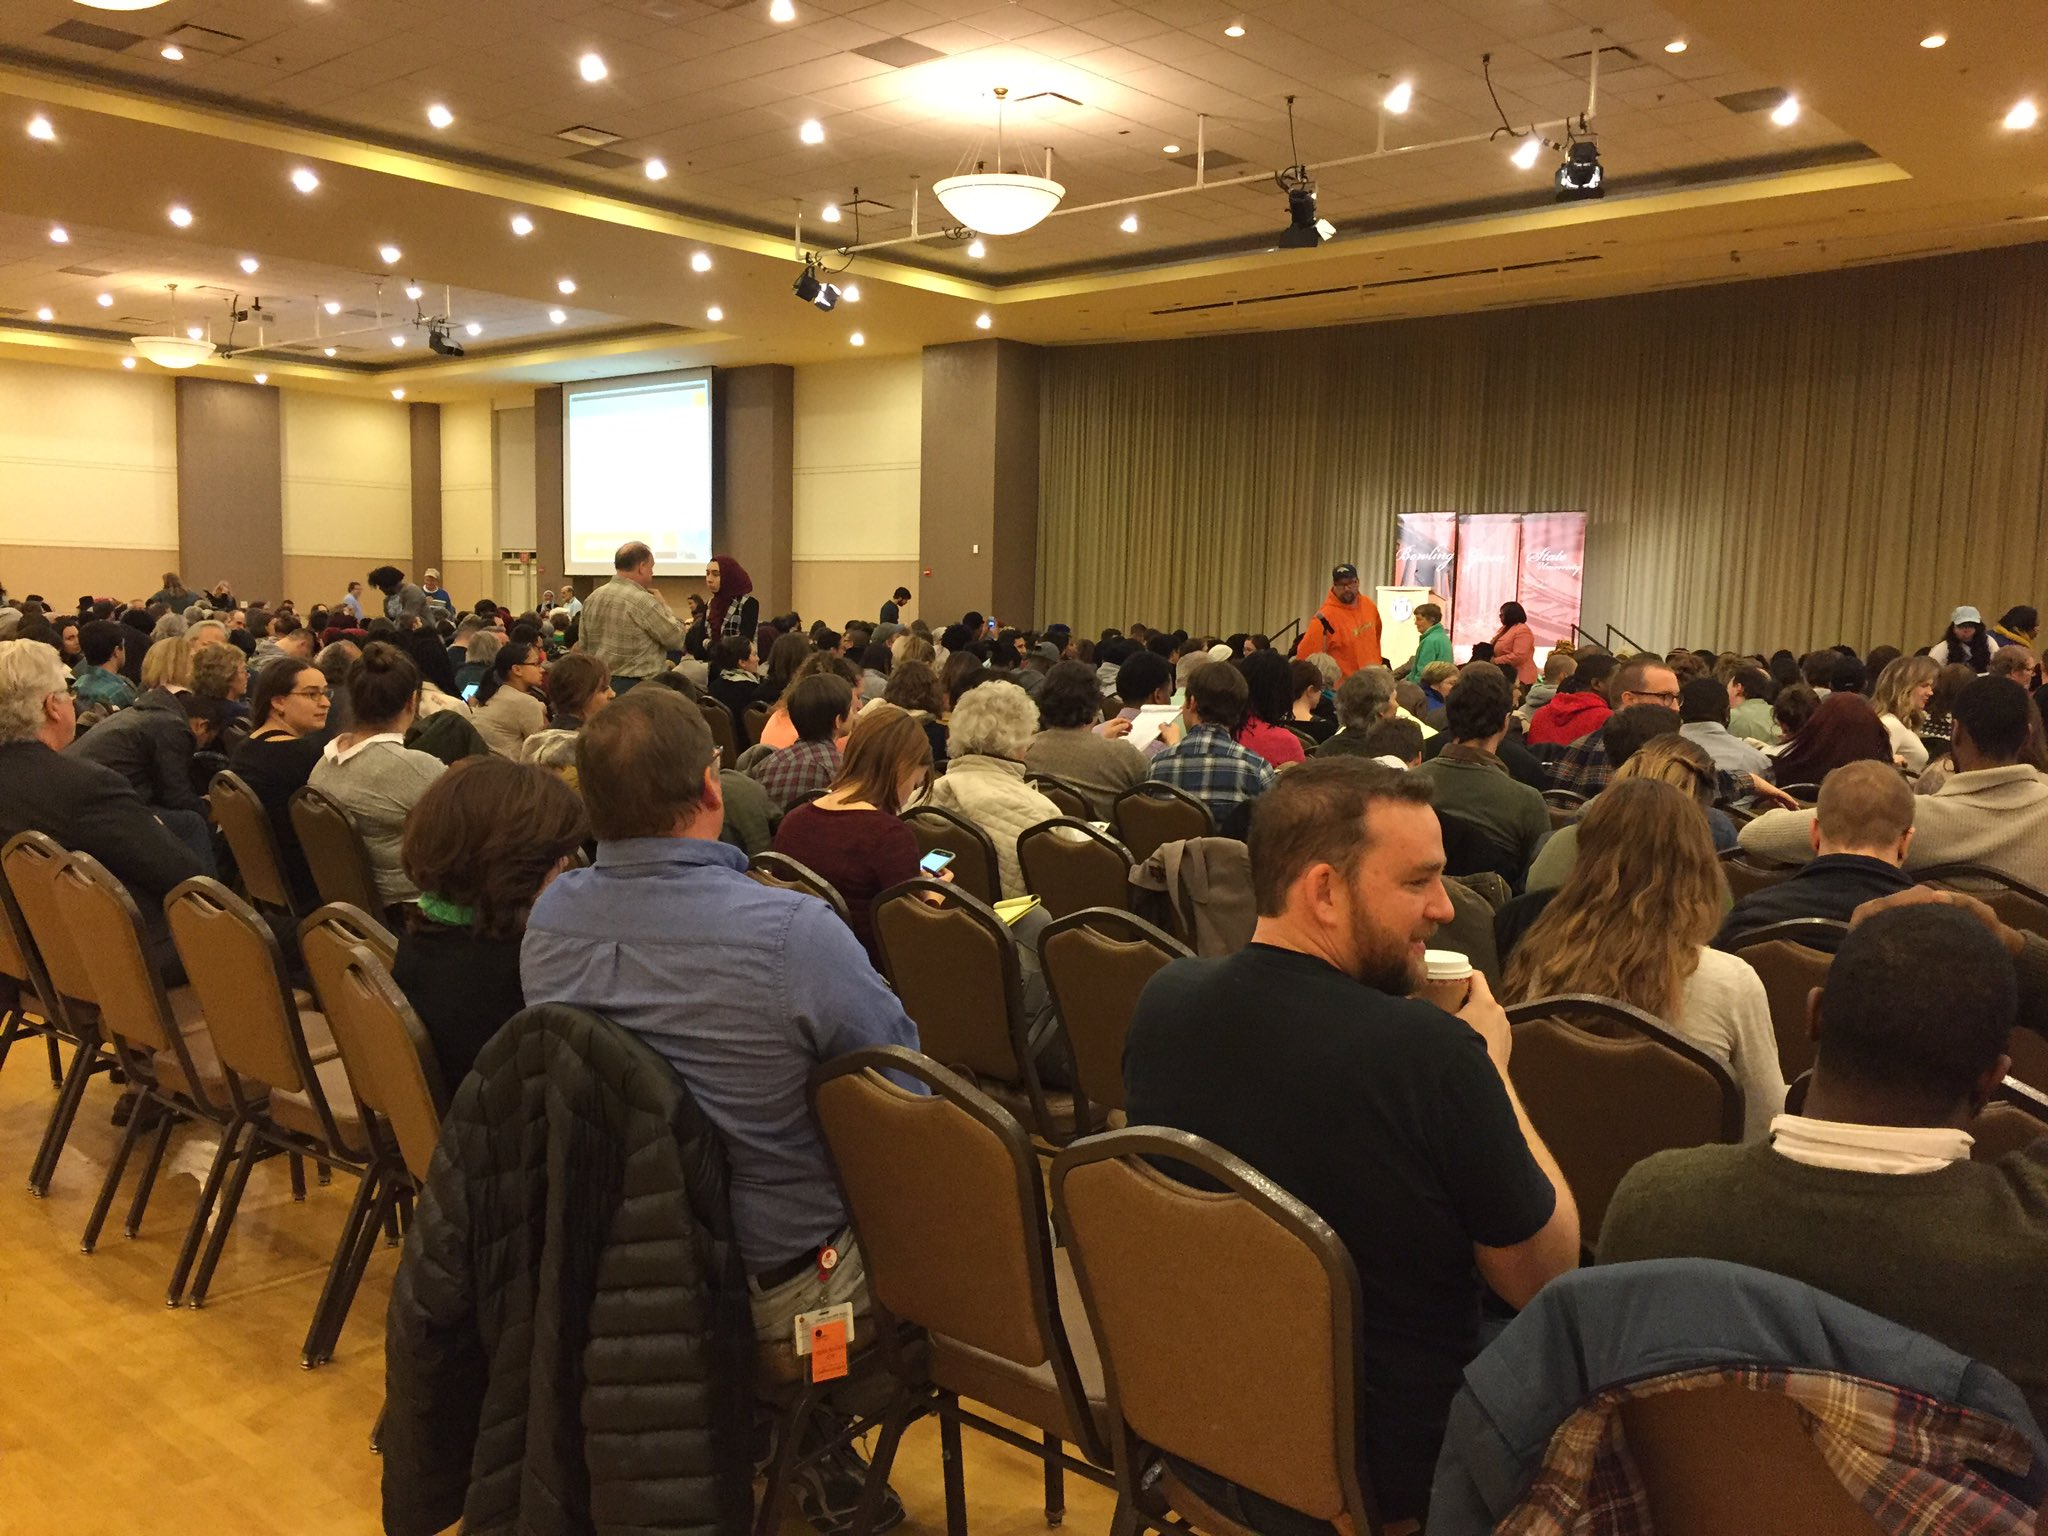 A full house is expected in the BGSU ballroom to hear Dr. Cornel West! https://t.co/QWbmHxtLGj